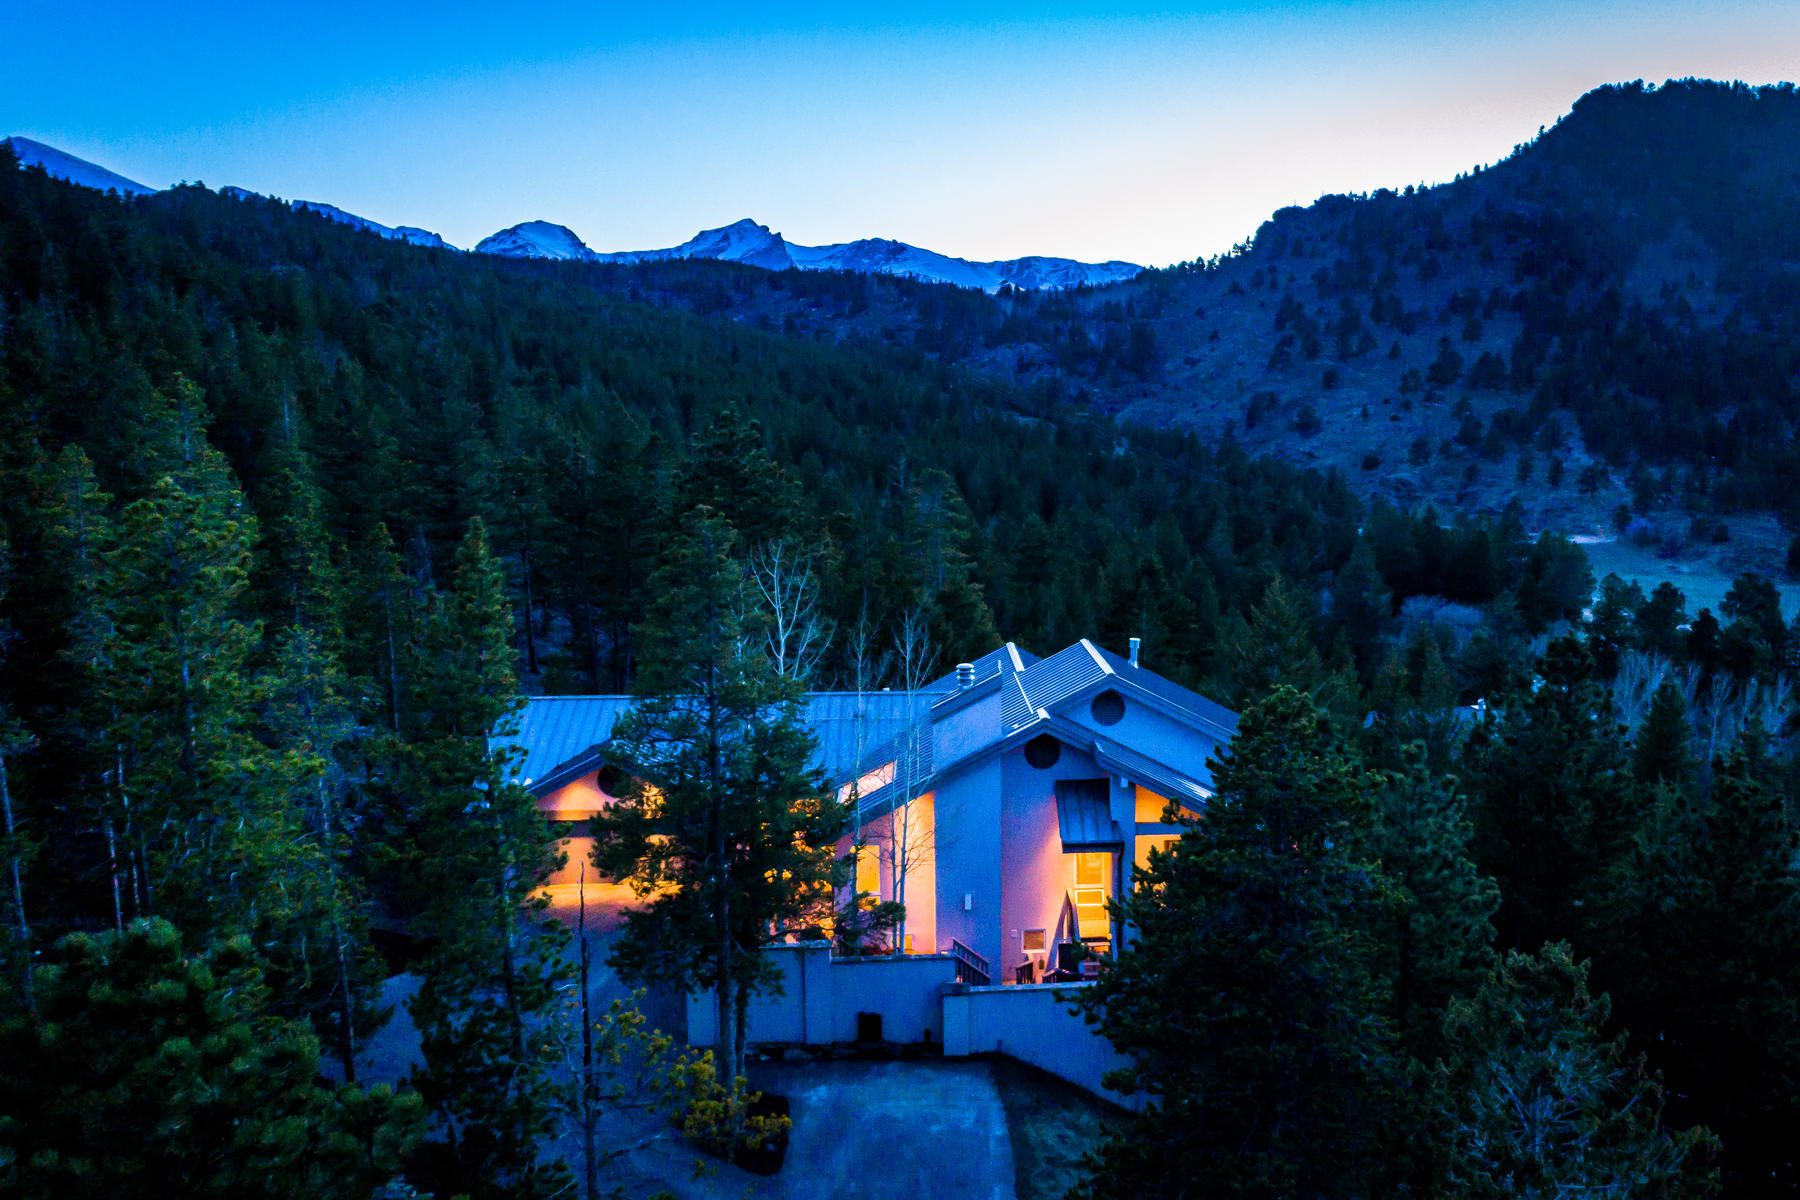 Single Family Home for Active at Private Mountain Property Borders Rocky Mountain National Park 2725 Nimbus Dr Estes Park, Colorado 80517 United States